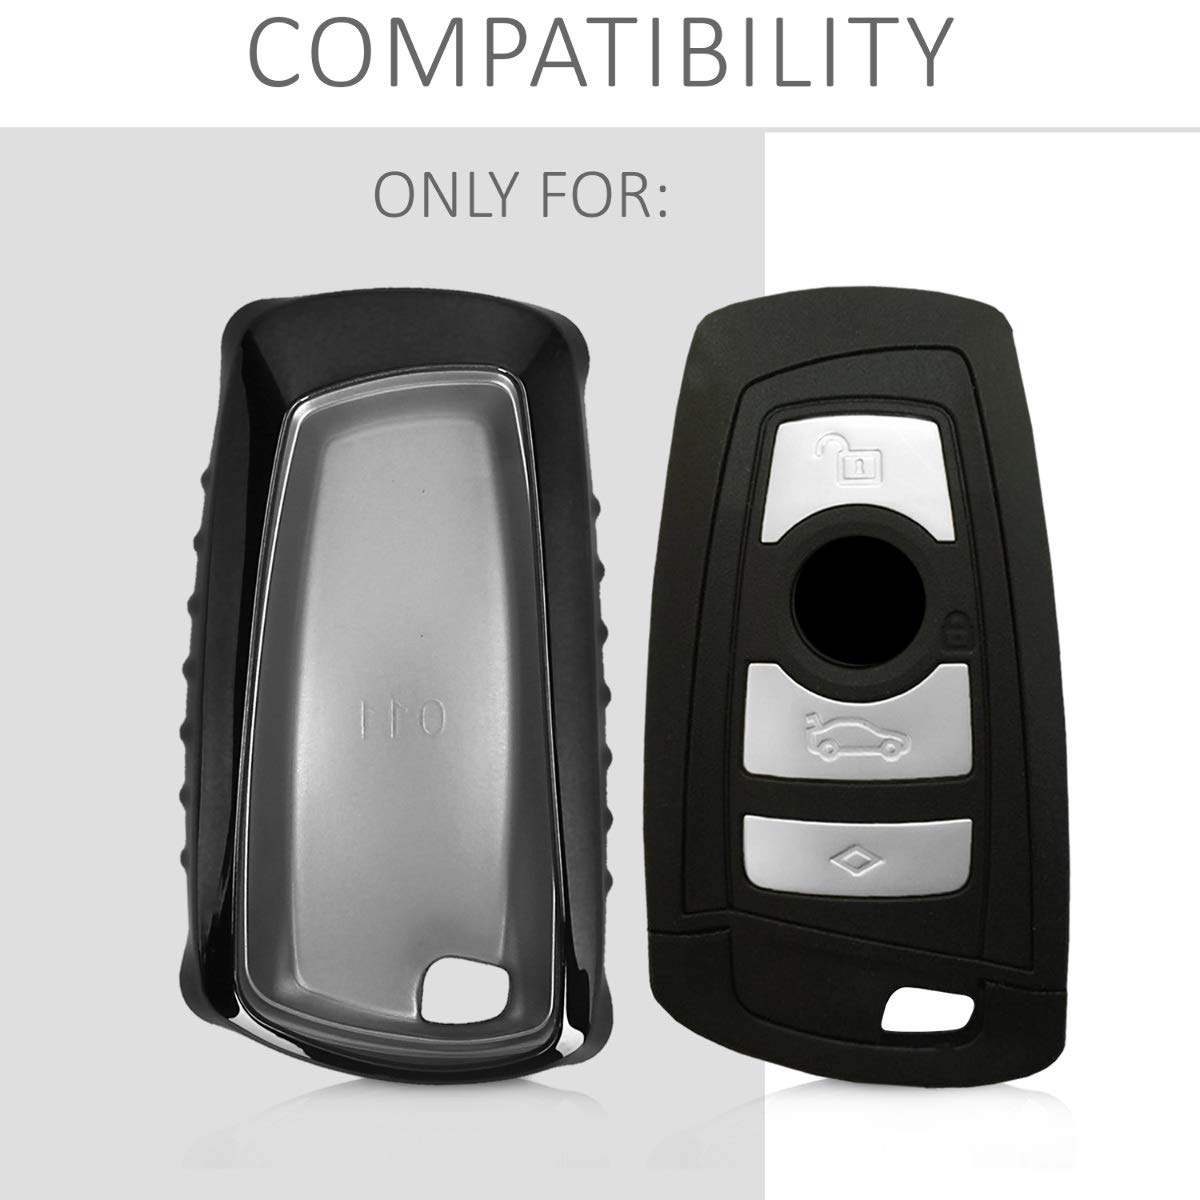 - Silver//Metallic Silver only Keyless Go kwmobile Car Key Cover for BMW Soft TPU Silicone Protective Key Fob Cover for BMW 3 Button Remote Control Car Key